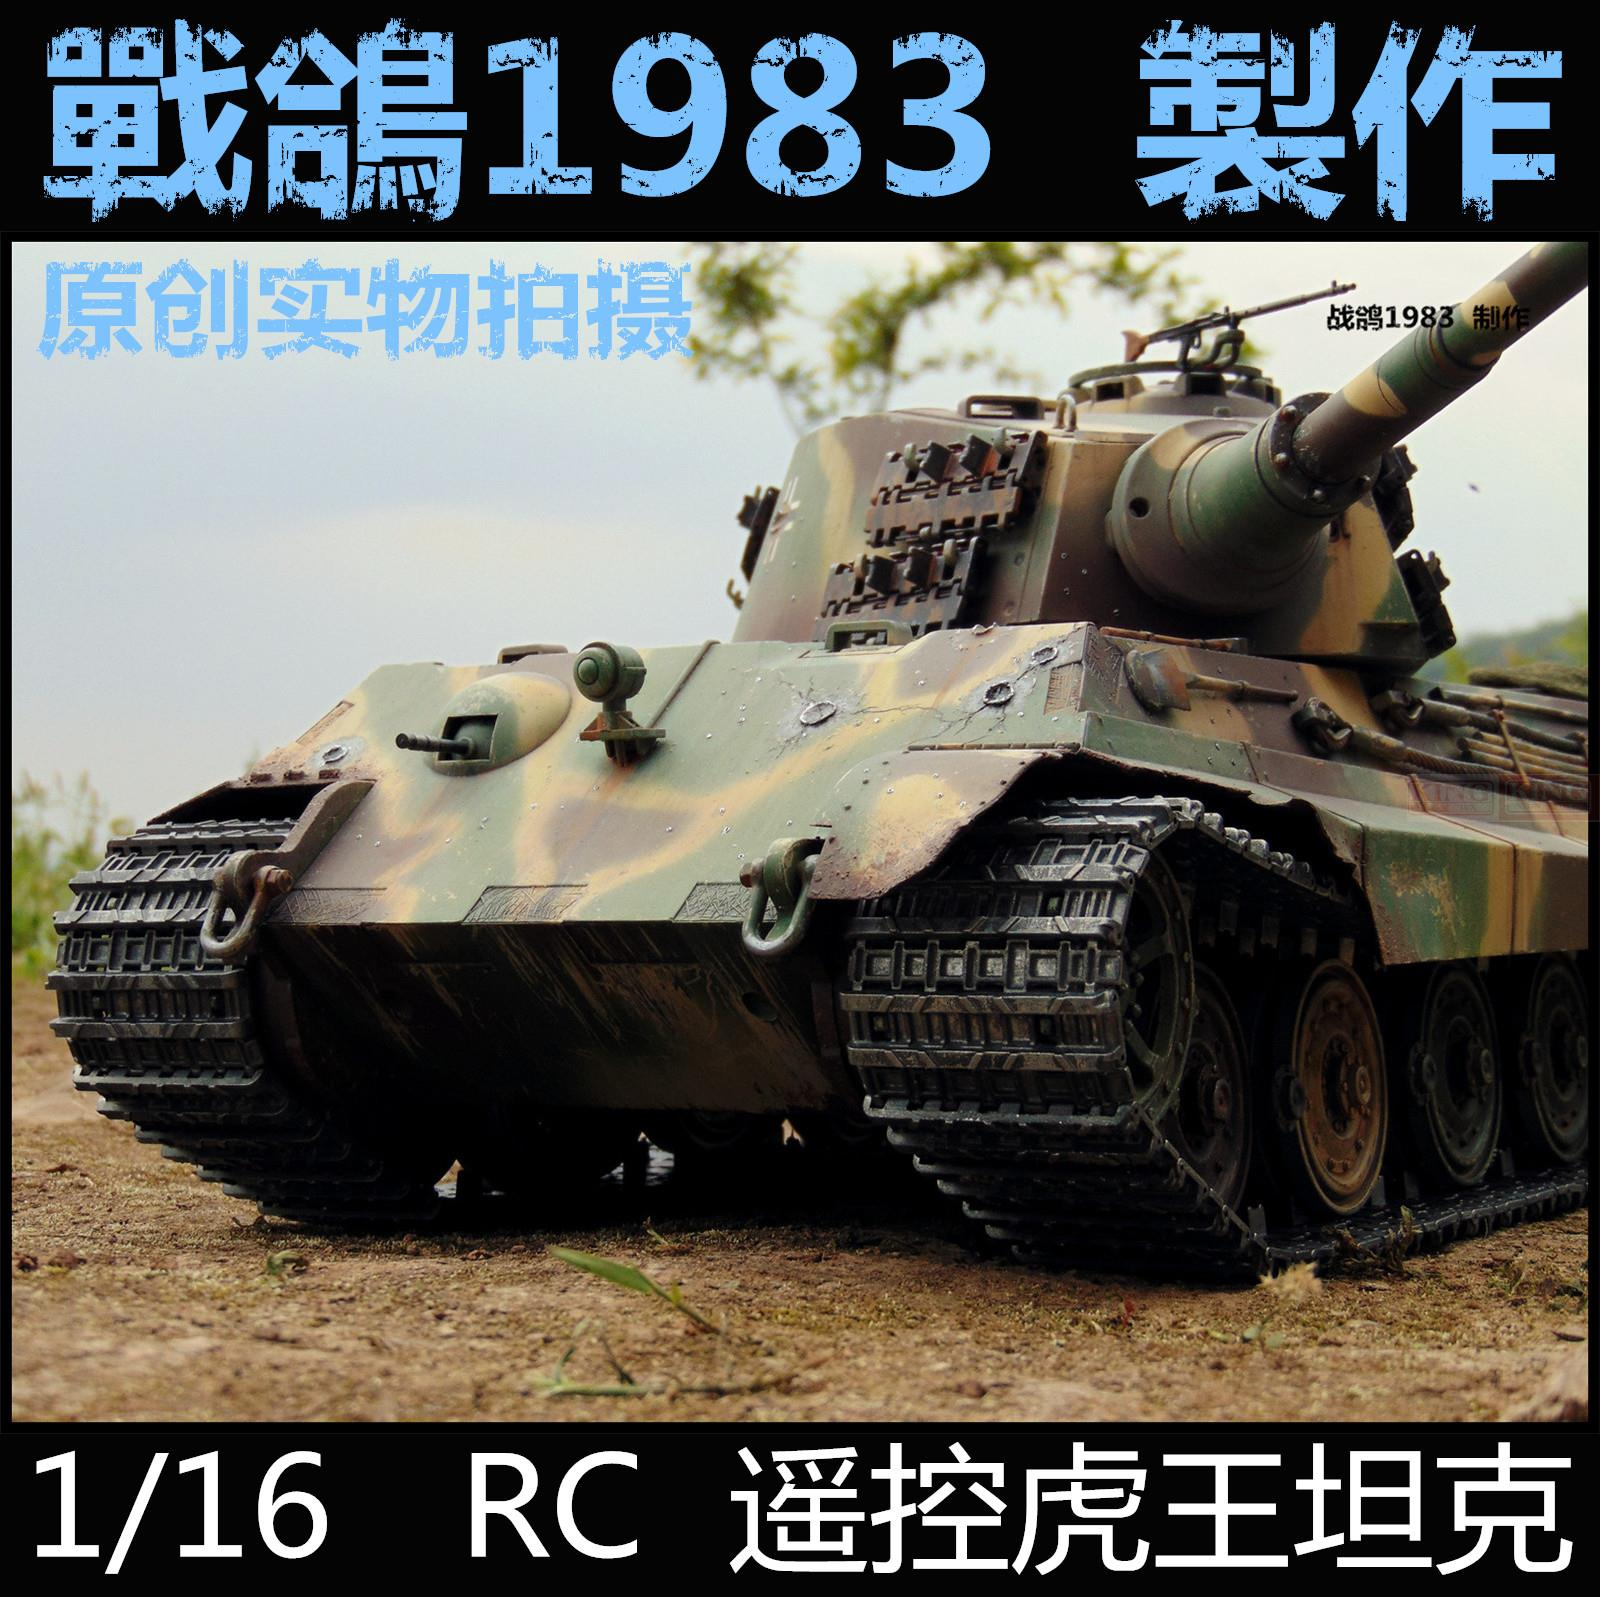 KNL HOBBY Heng Long 1/16 RC King Tiger tank model remote control OEM heavy coating of paint to do the old upgrade knl hobby voyager model pe35418 m1a1 tusk1 ubilan